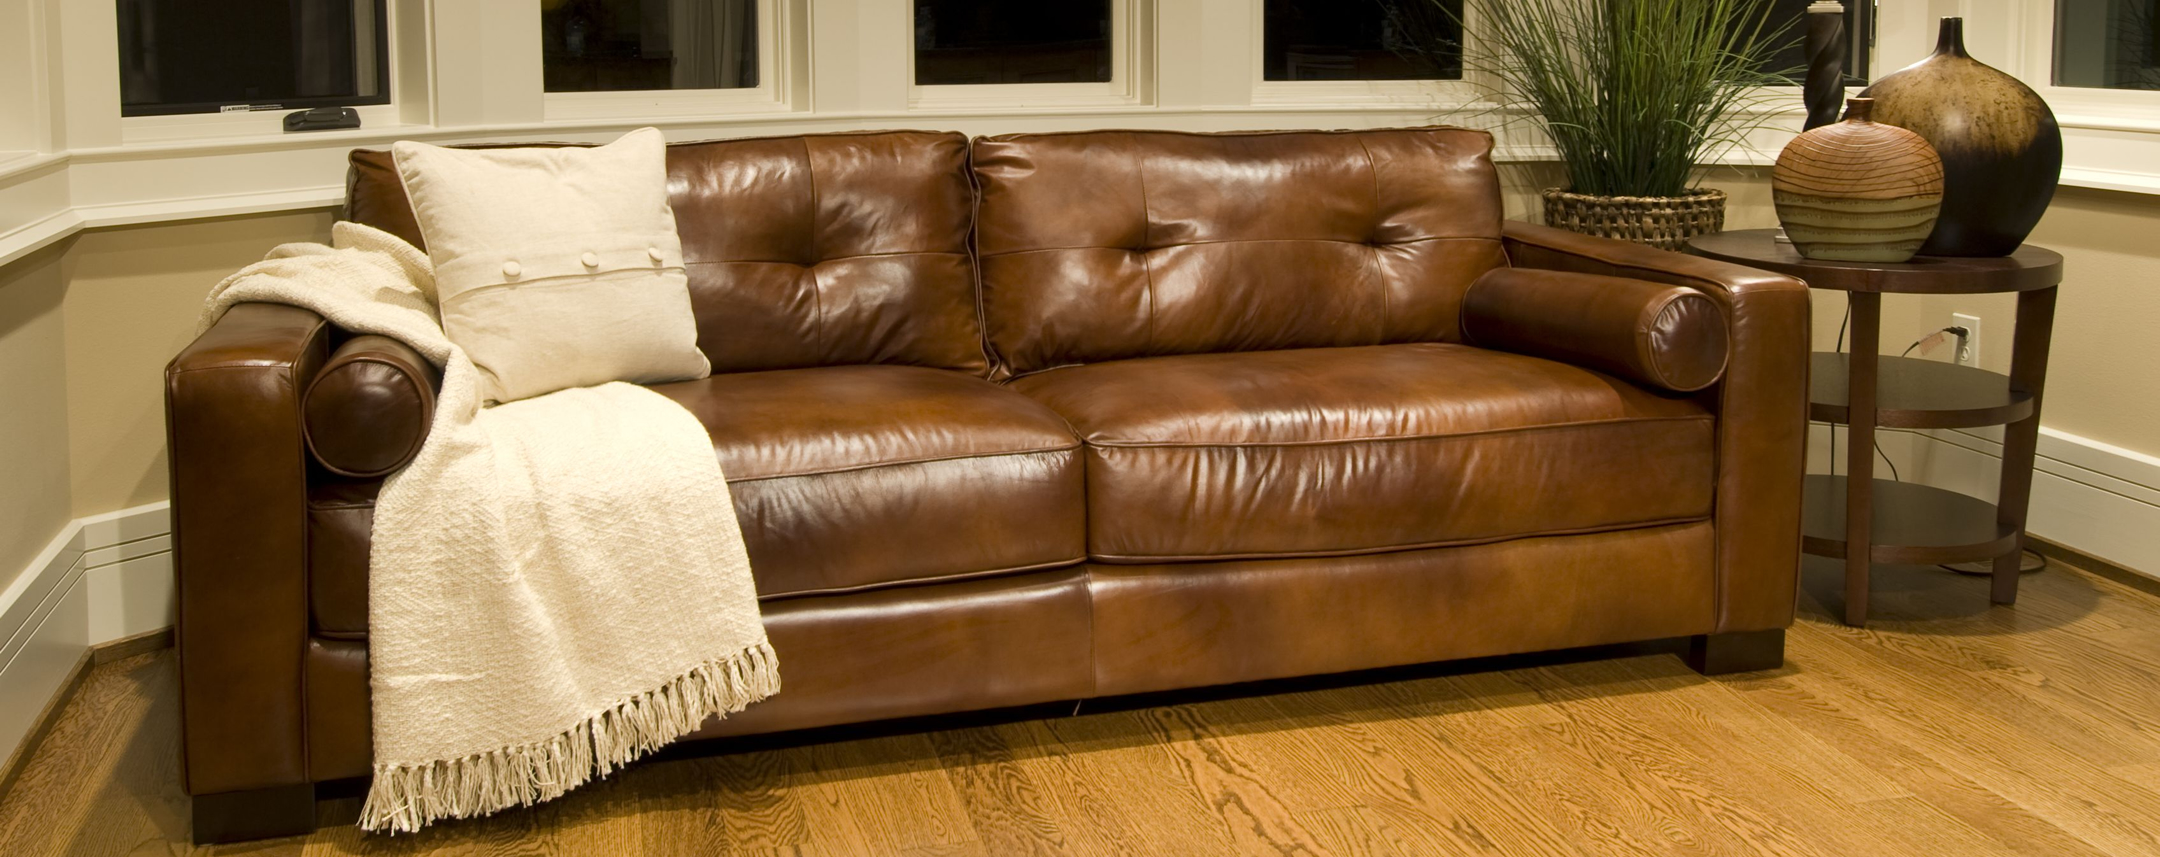 Leather sofa decoration designs guide for Leather furniture